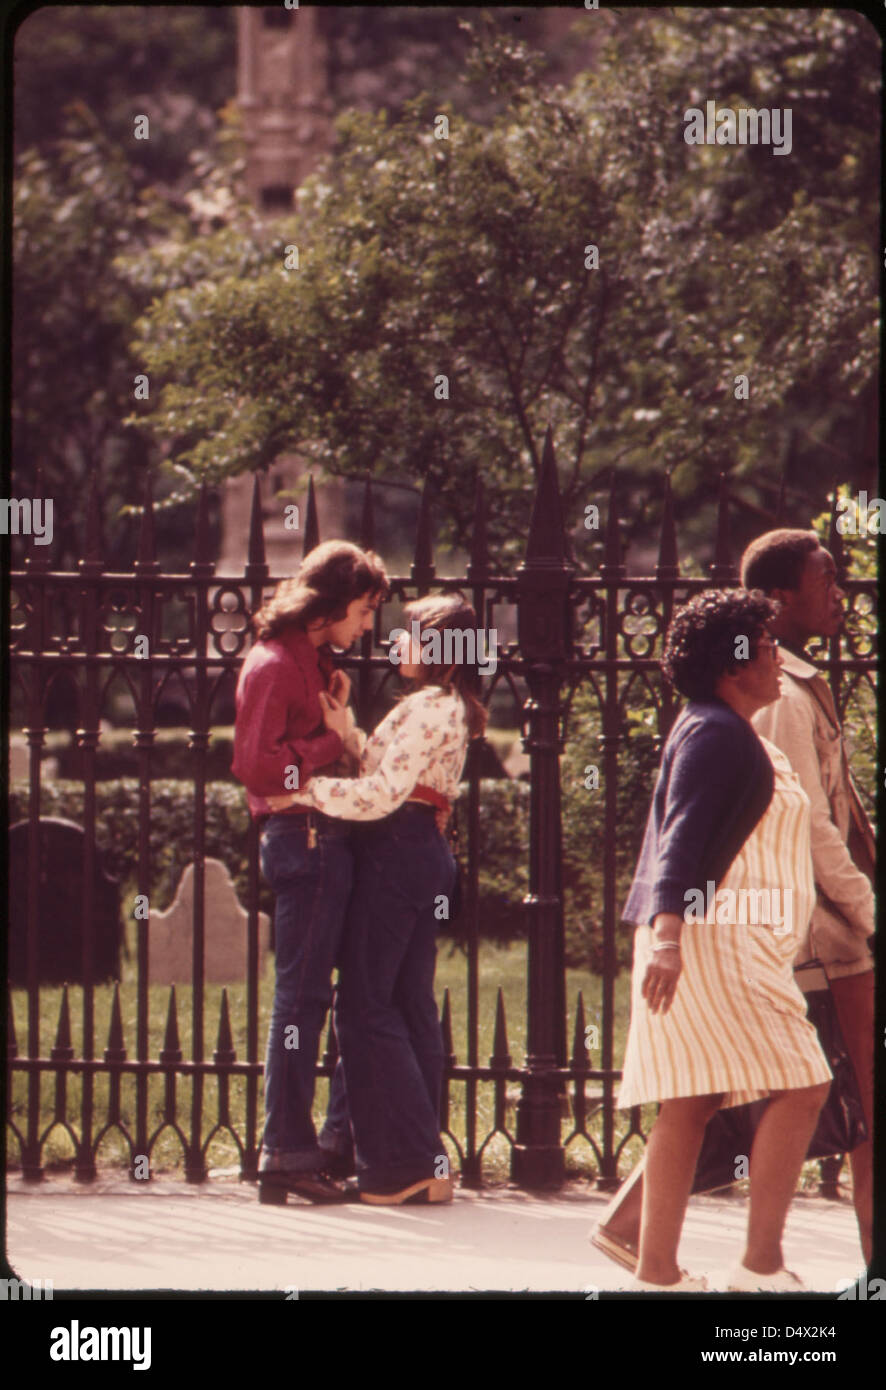 Springtime Scene by the Fence outside Historic Trinity Church at Broadway and Wall Street, Lower Manhattan 05/1973 - Stock Image